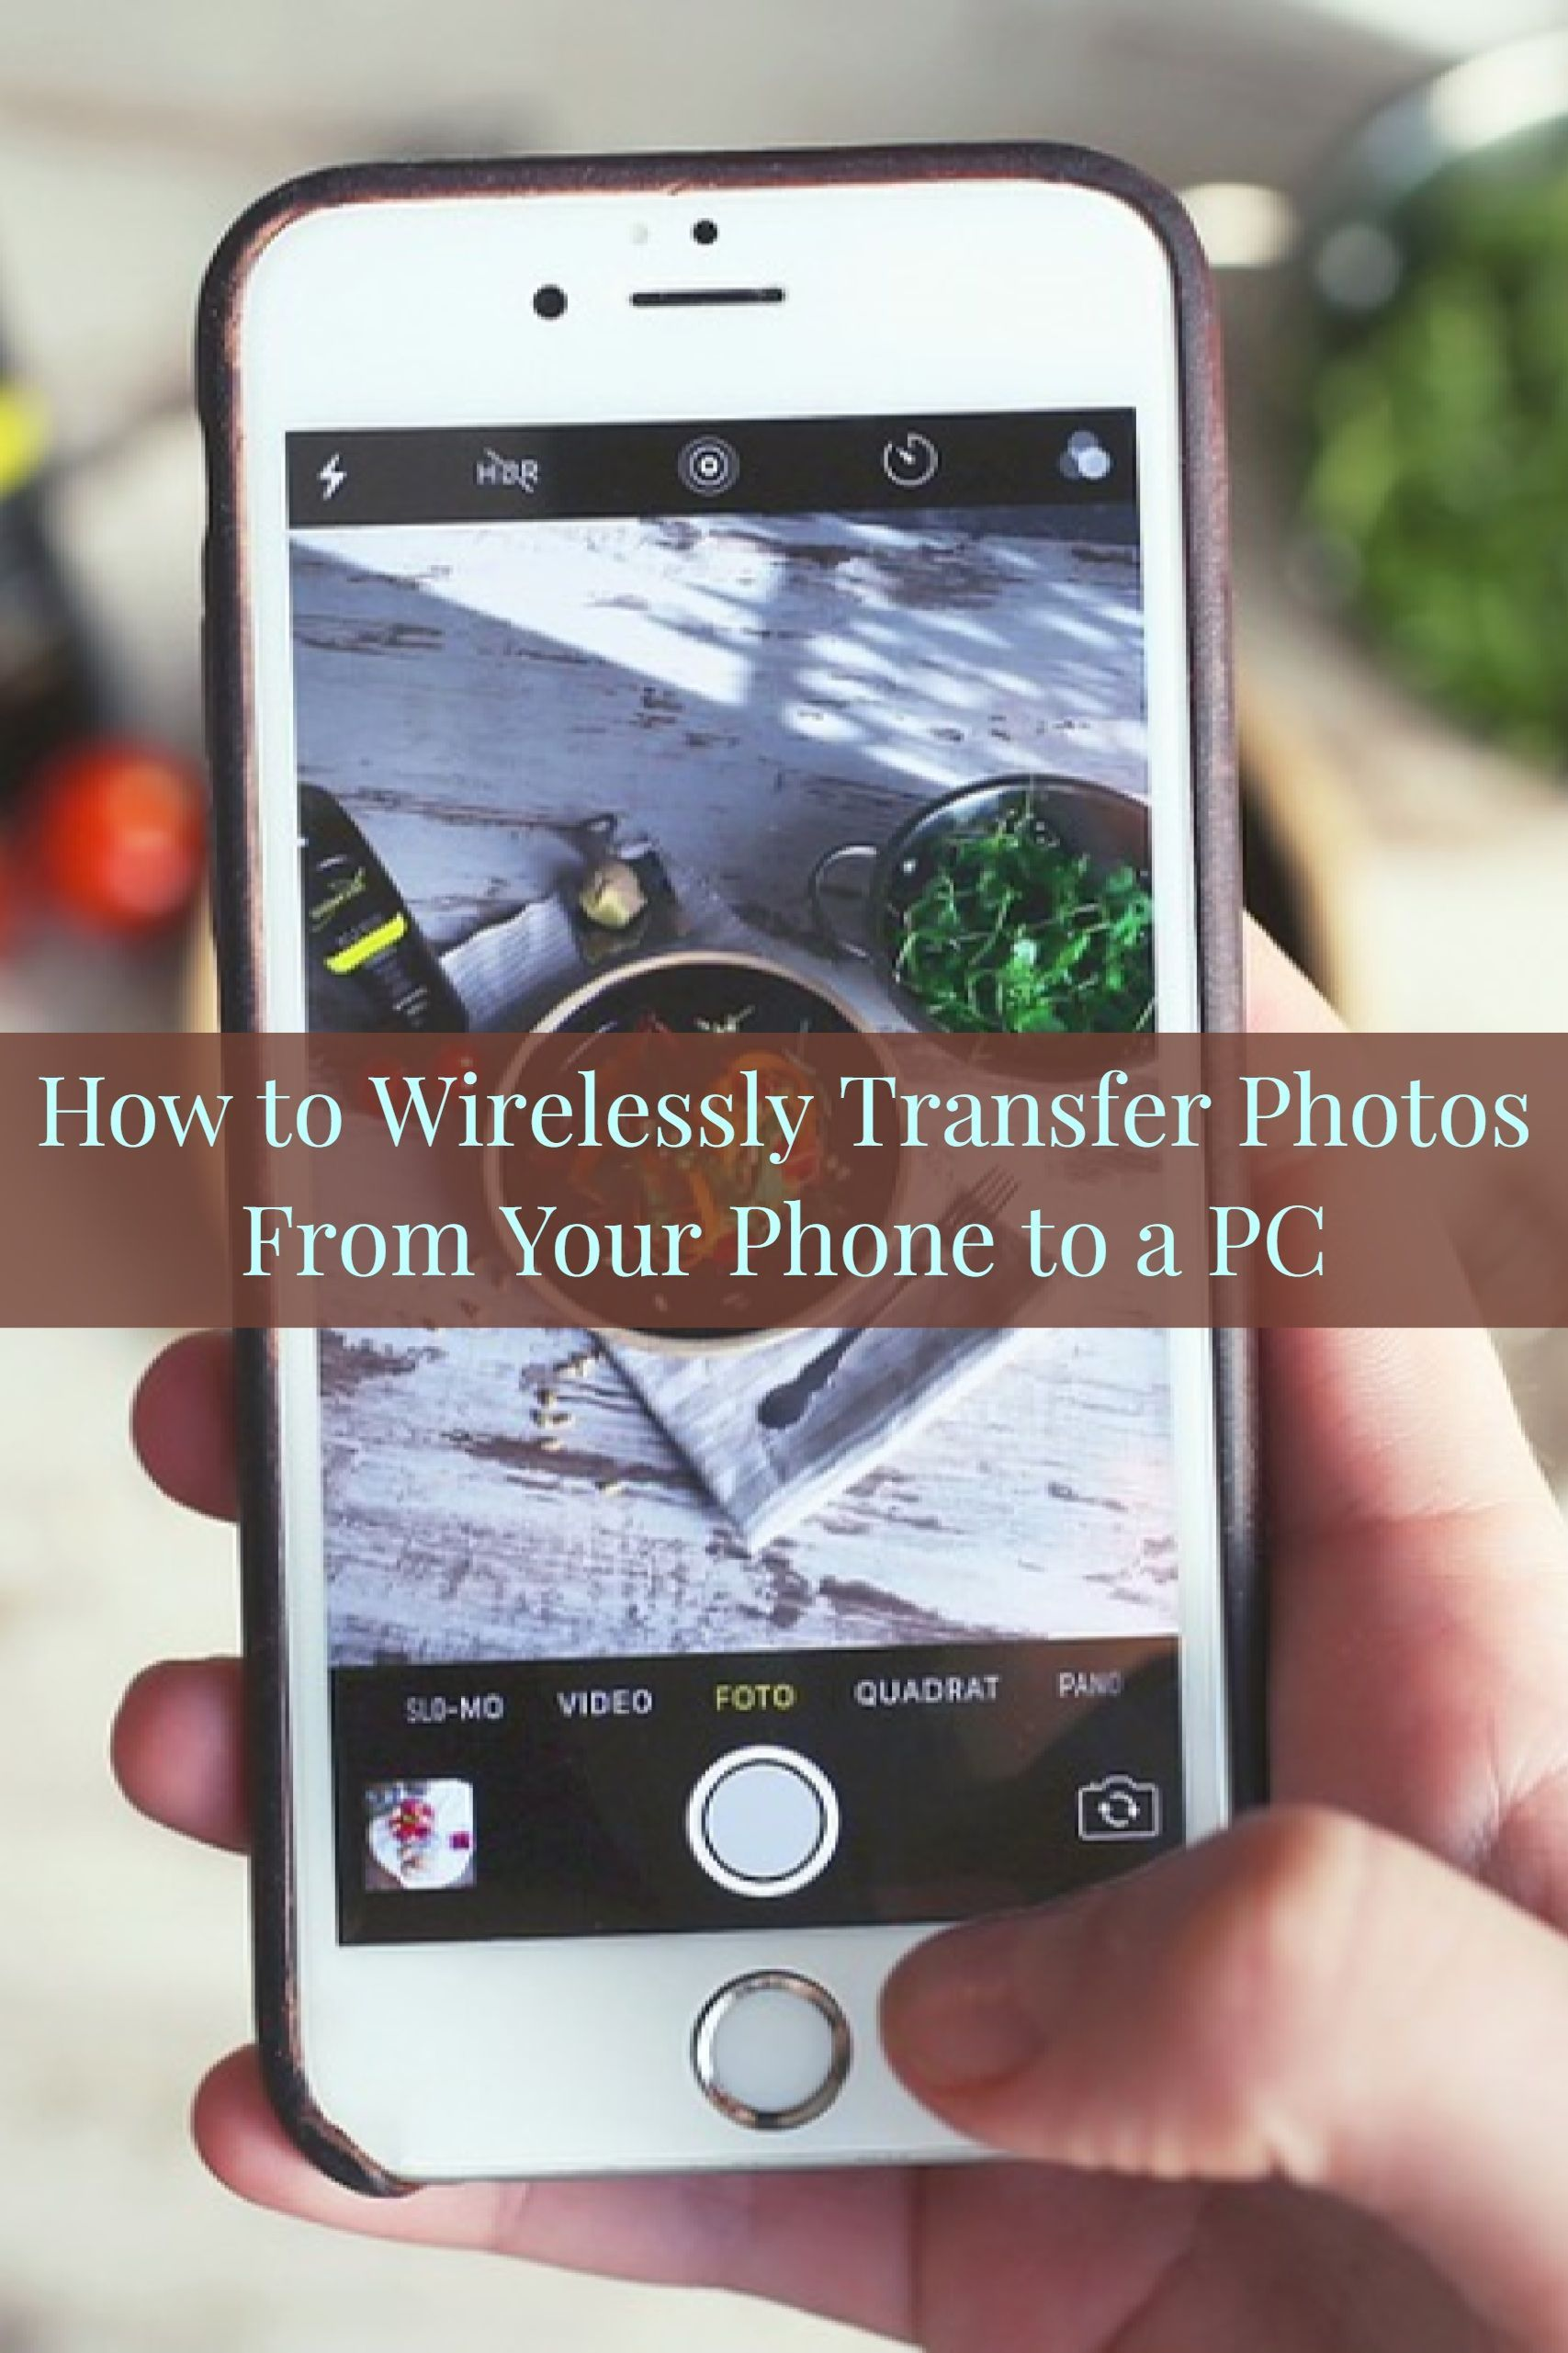 How To Transfer Photos From Iphone To Pc Windows Or Mac Online Dailysonline Dailys Https Onlinedailys Com Iphone Print Pictures From Iphone Iphone Memory